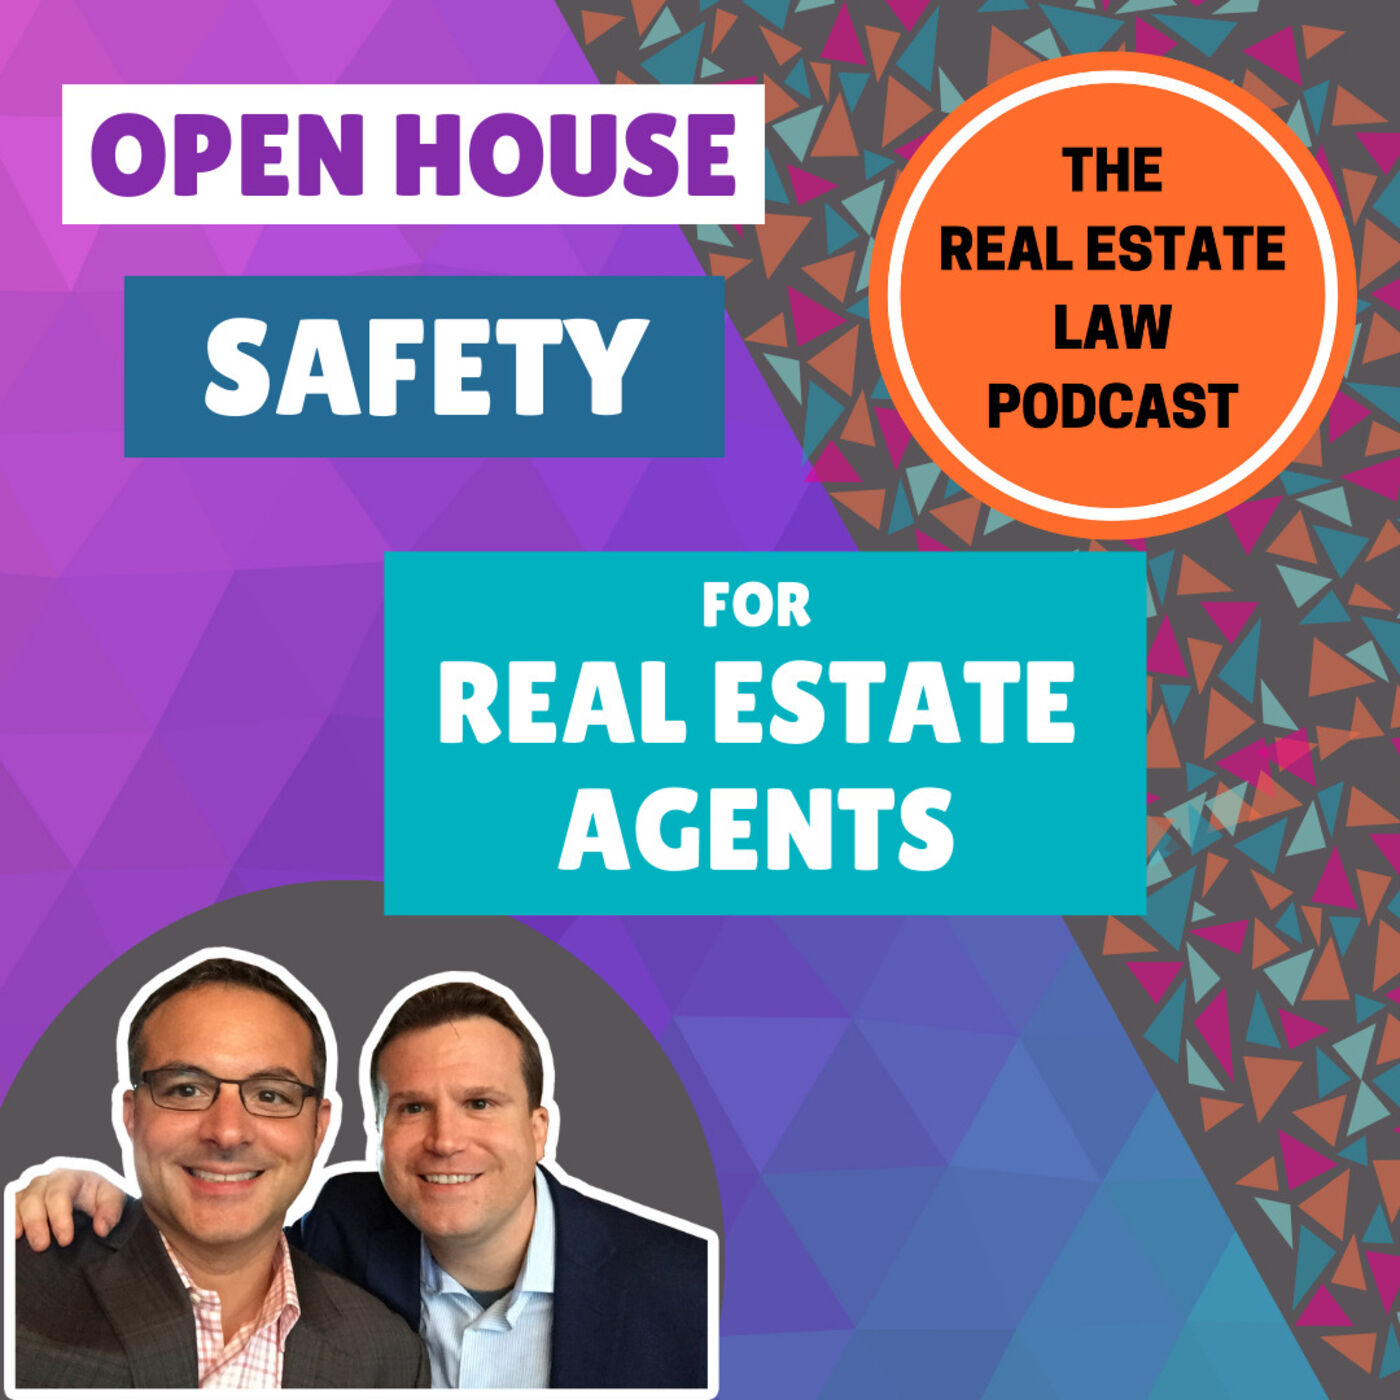 8 - Open House Safety for Real Estate Agents, Buyers, and Property Owners